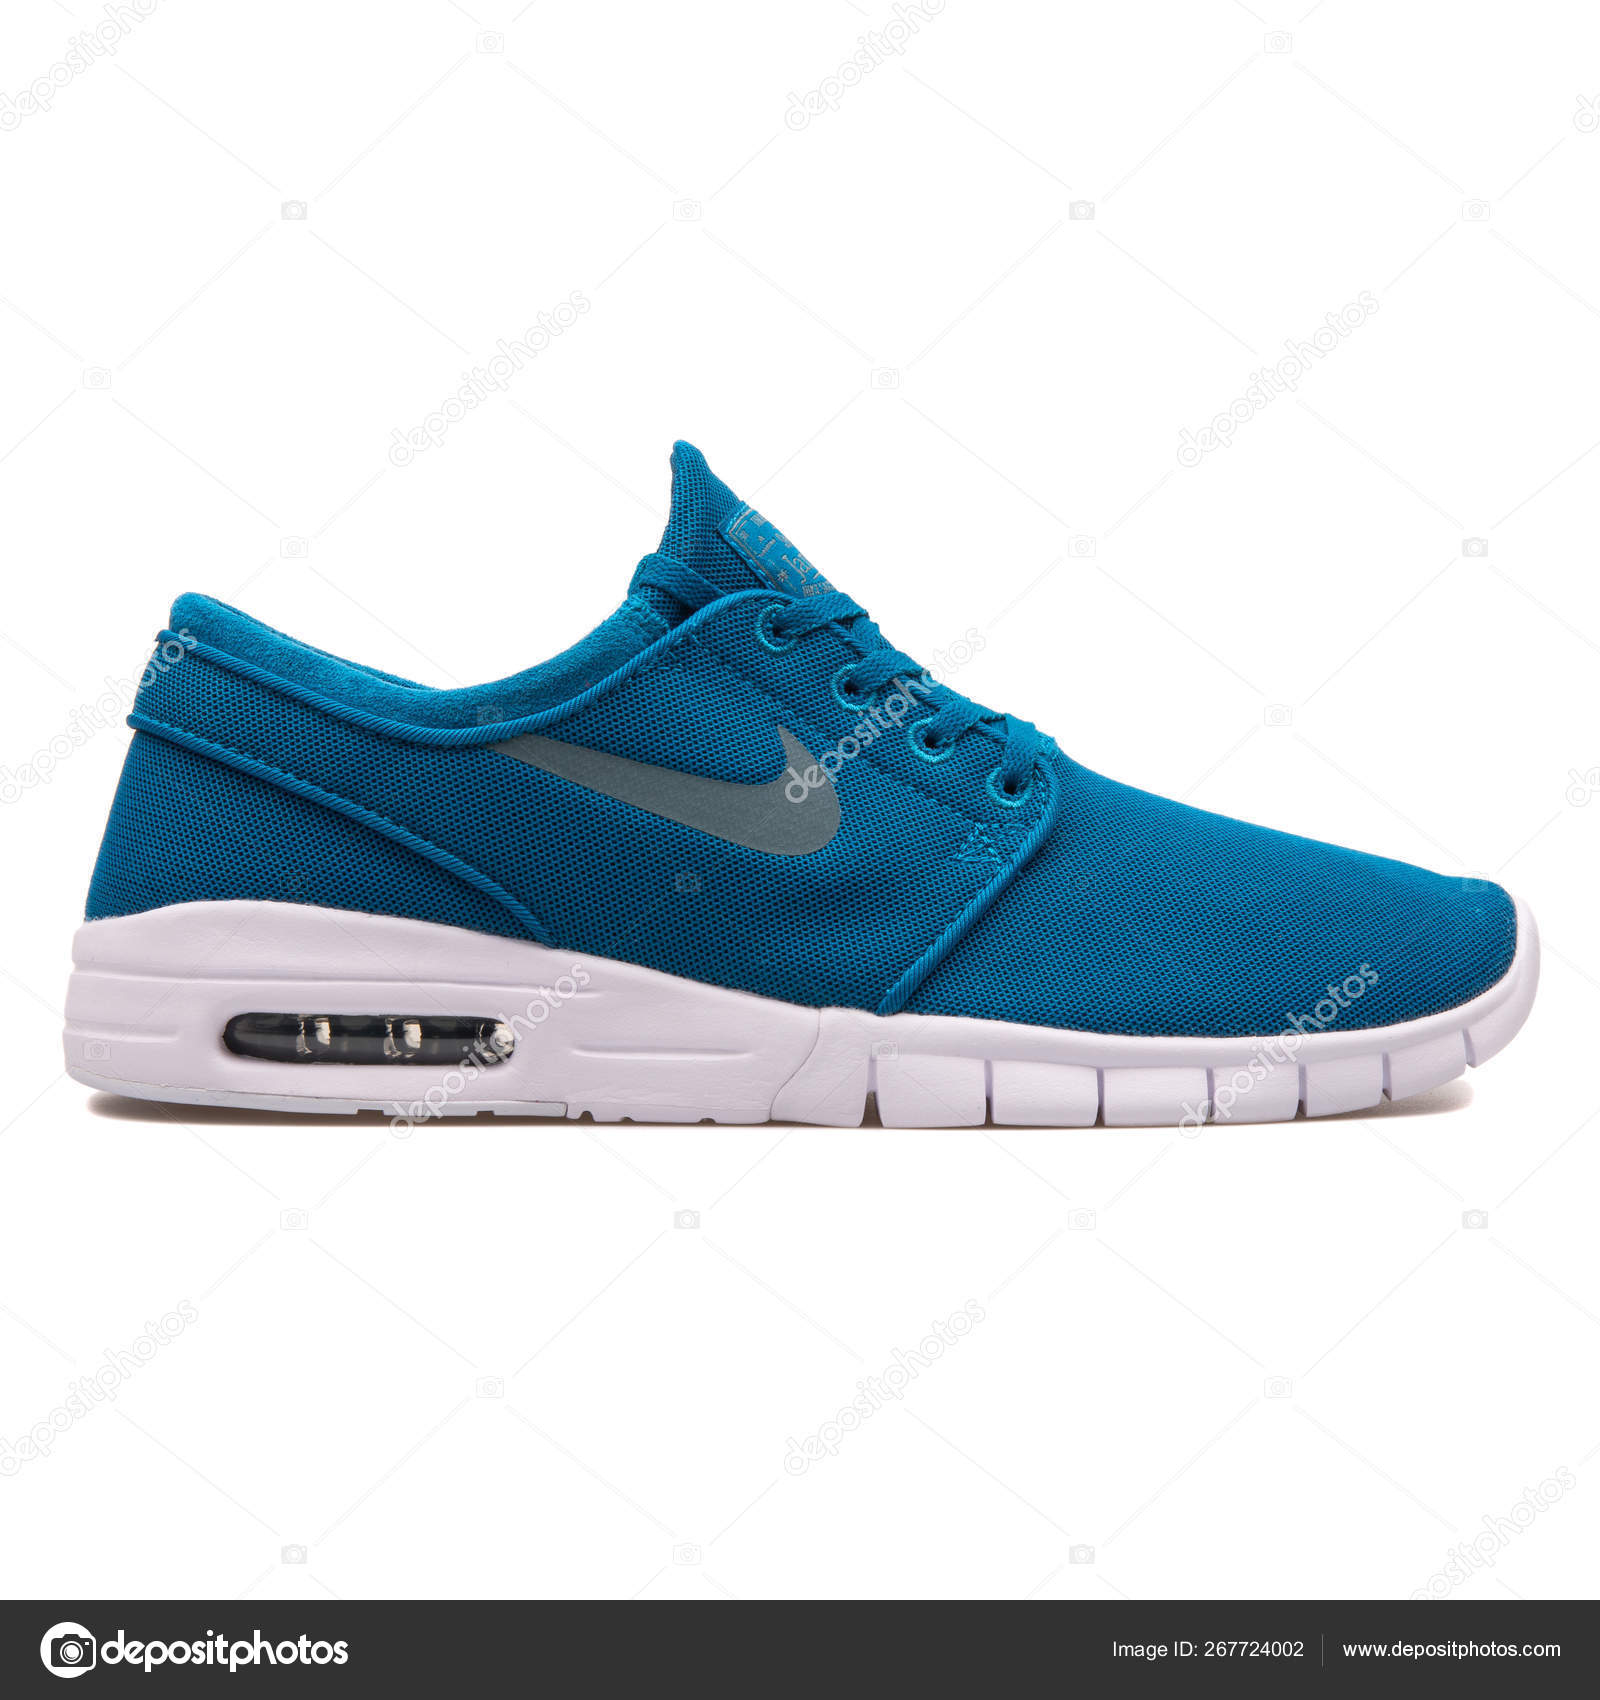 d2f138e3 Similar Royalty-free Images: Nike Air Zoom Vomero Running Shoes Isolated  White Background ...